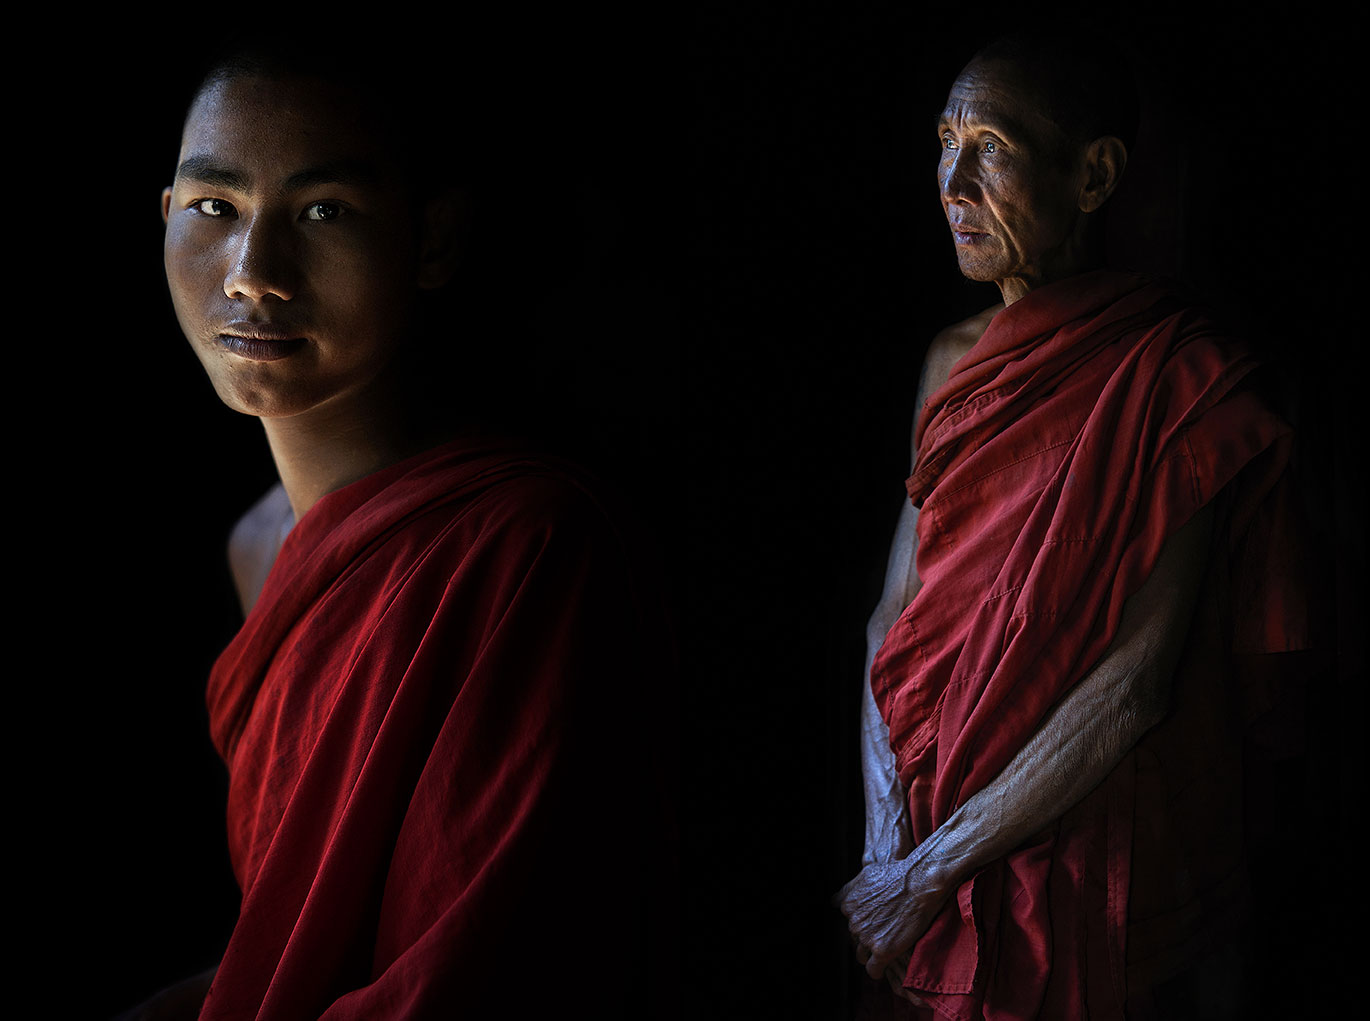 ©John Quintero Myanmar Photo Expedition